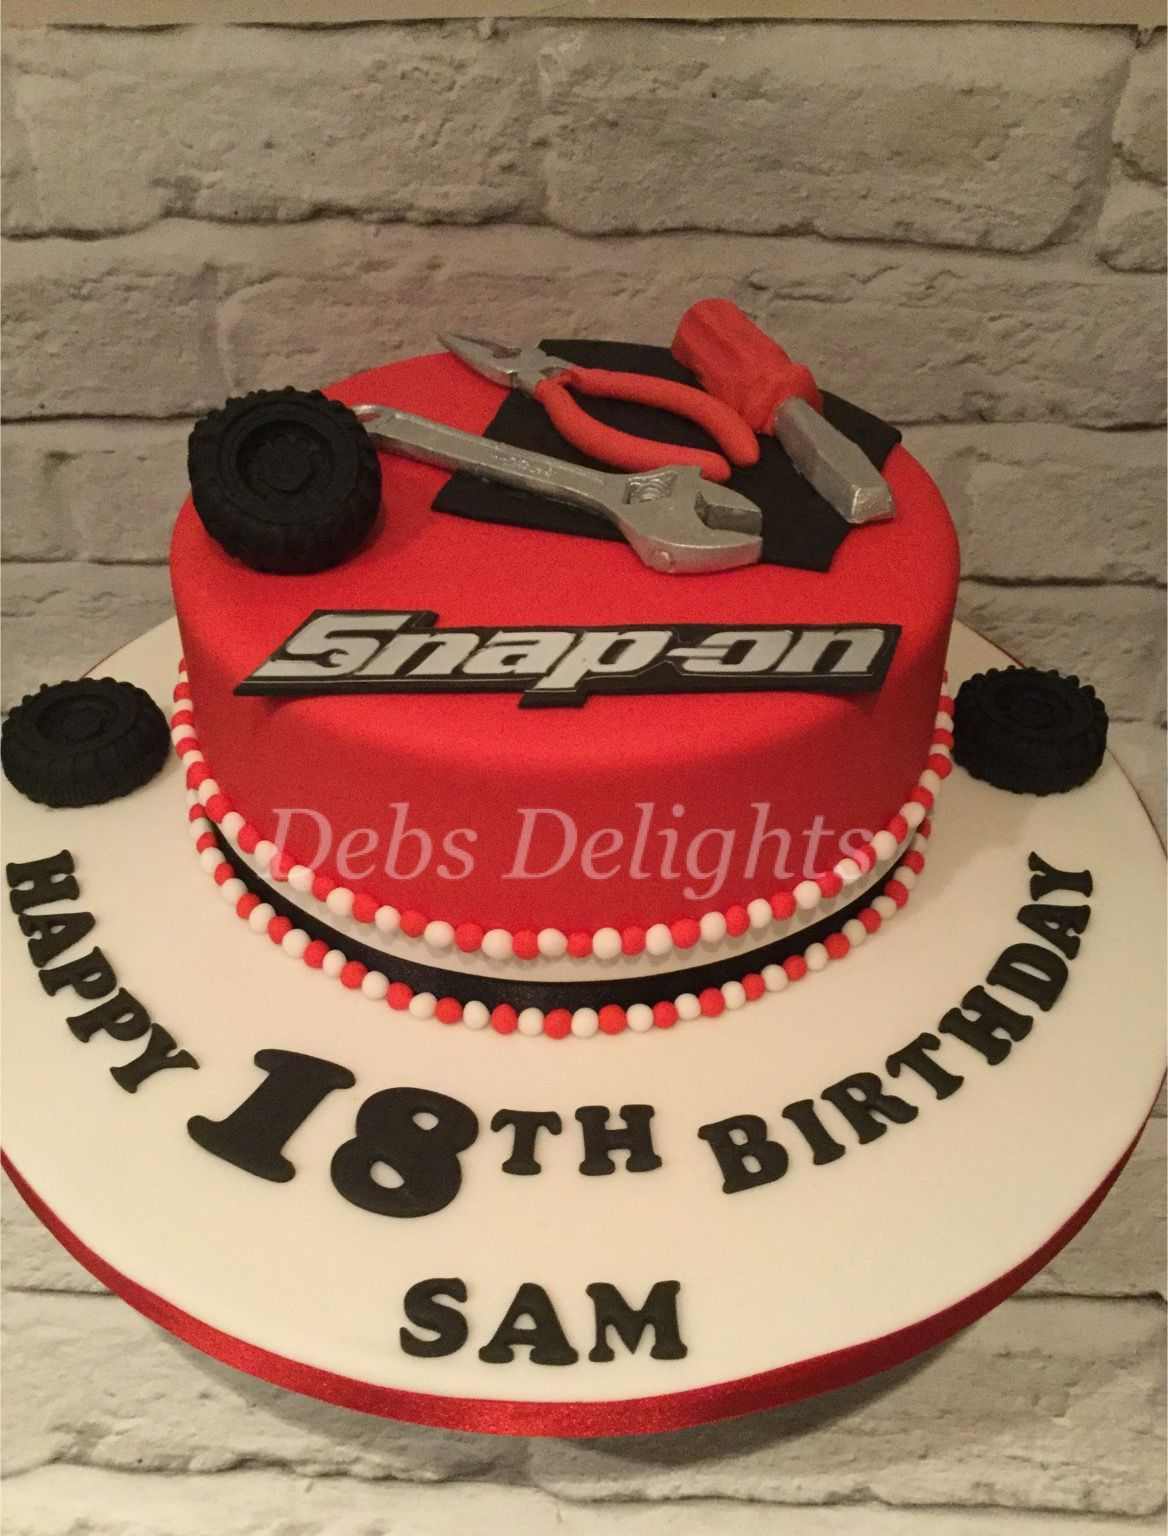 Snap on themed tool cake   Cakes in 2019   Cake, Tool cake, 50th ...